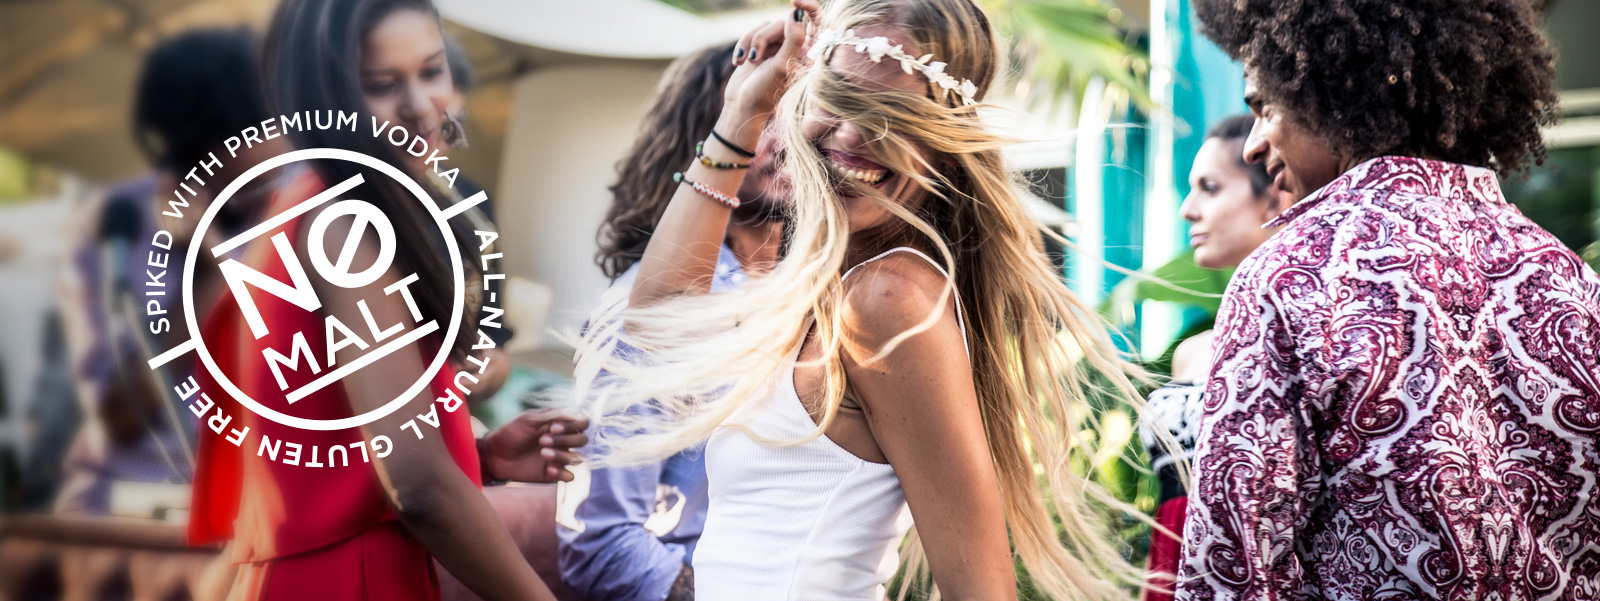 Group of friends dancing. Biza cocktails contain no malt, only premium vodka. They are all-natural and gluten free.